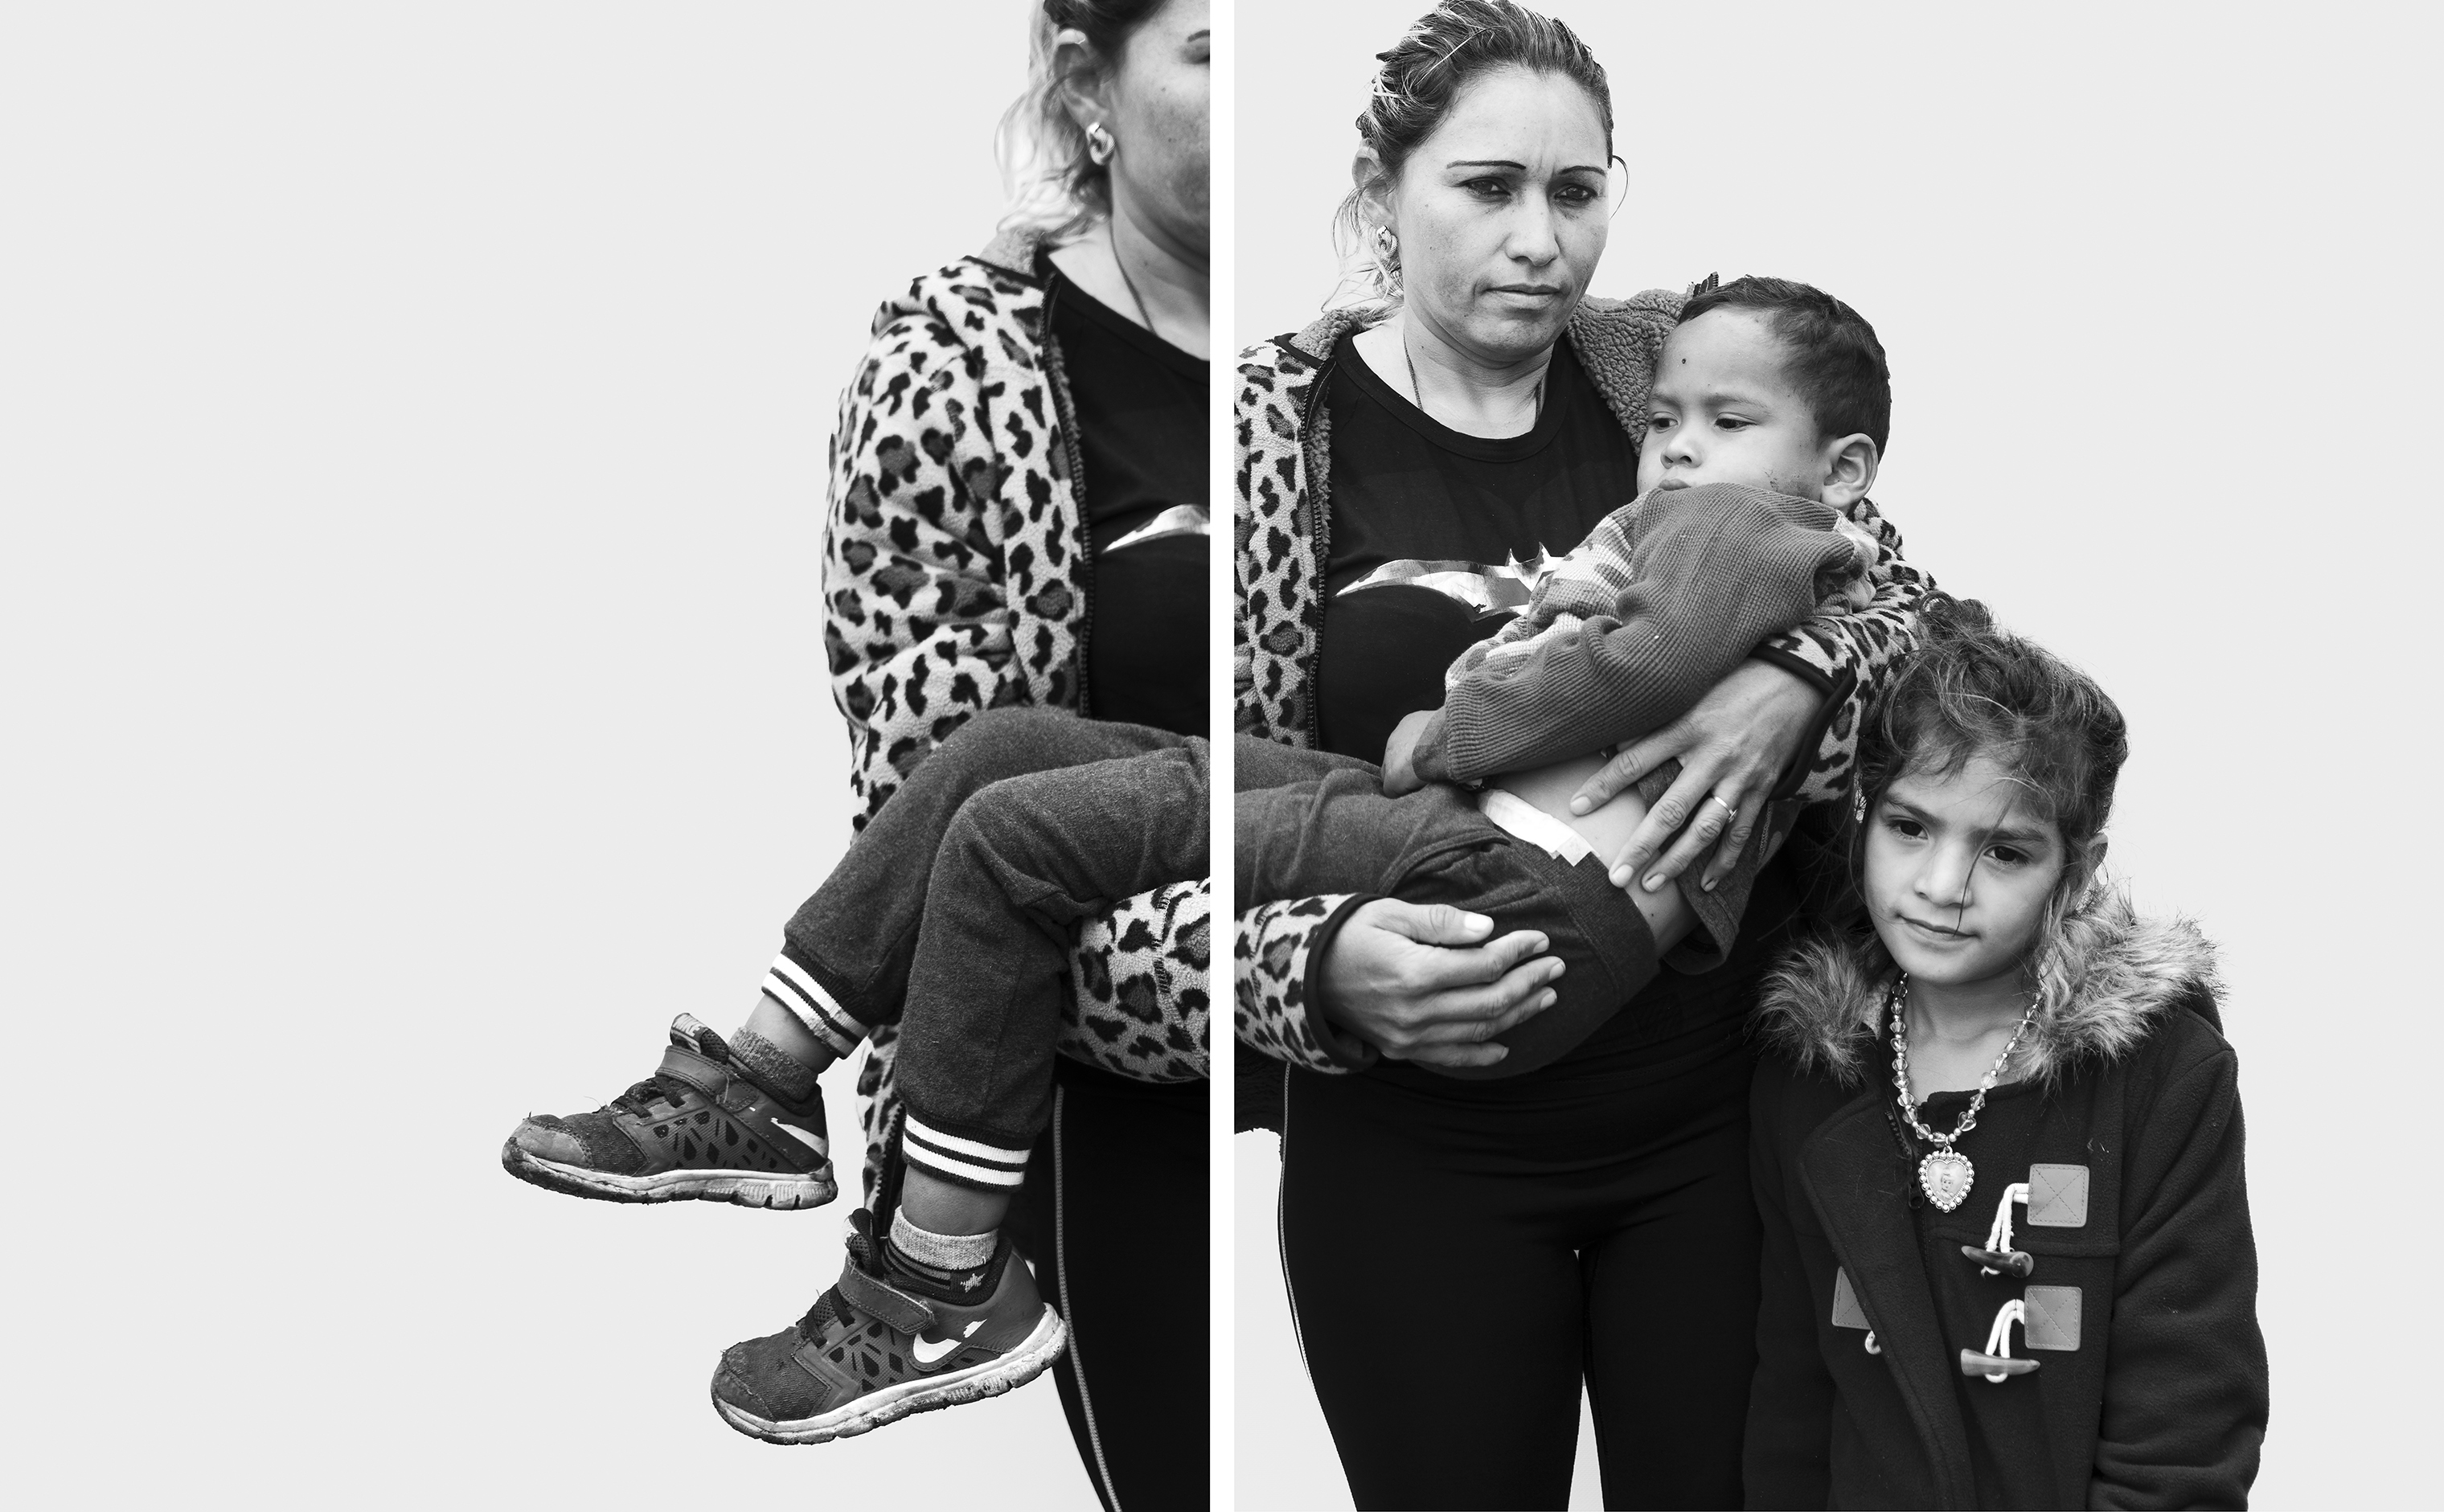 Merlin Alfaro, 31, and her children, José Luis Guevara, 3, and Maydelin Guevara, 7, traveled from their home in Honduras to Tijuana, Mexico, at the southern U.S. border with a migrant caravan in late 2018